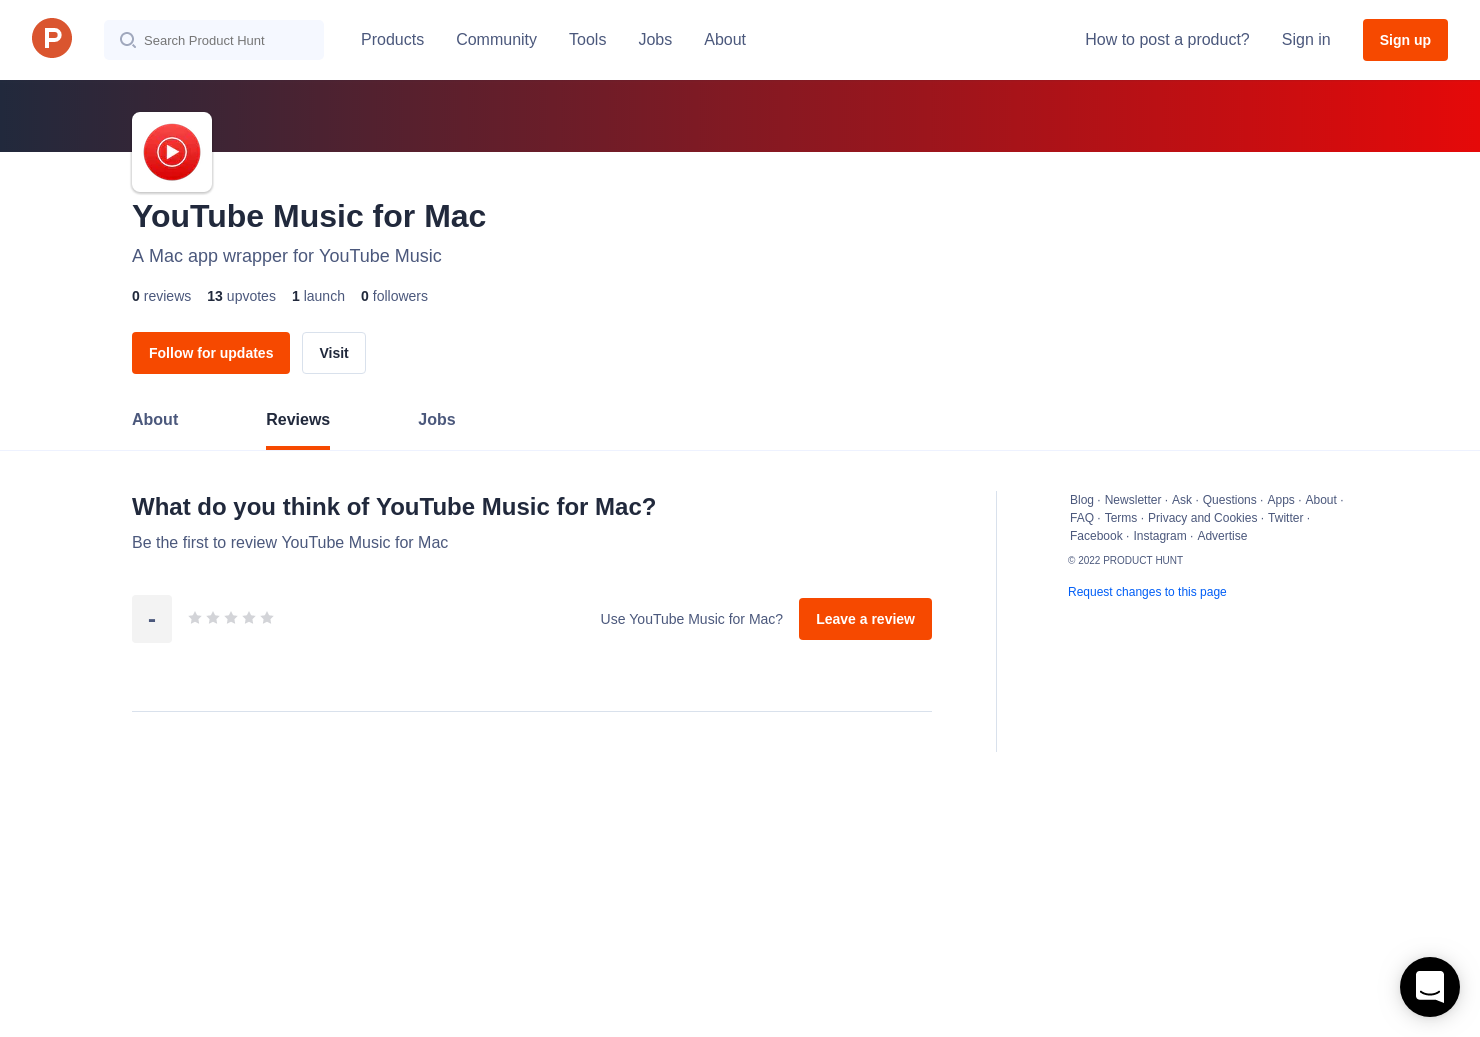 YouTube Music for Mac Reviews - Pros, Cons and Rating